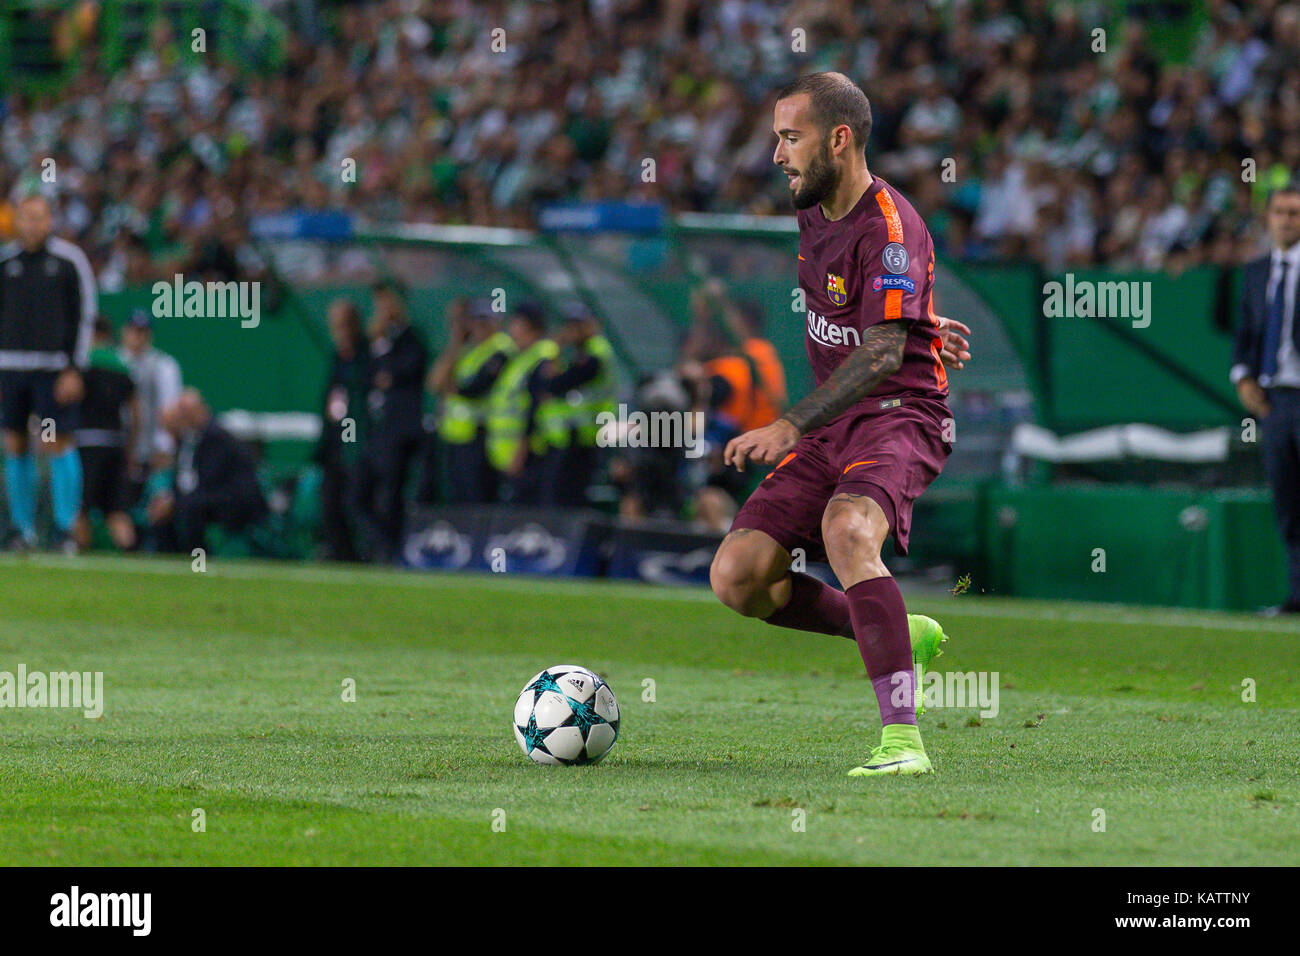 Lisbon, Portugal. 27th Sep, 2017. Barcelona's defender from Spain Aleix Vidal (22) during the game of the 2nd - Stock Image